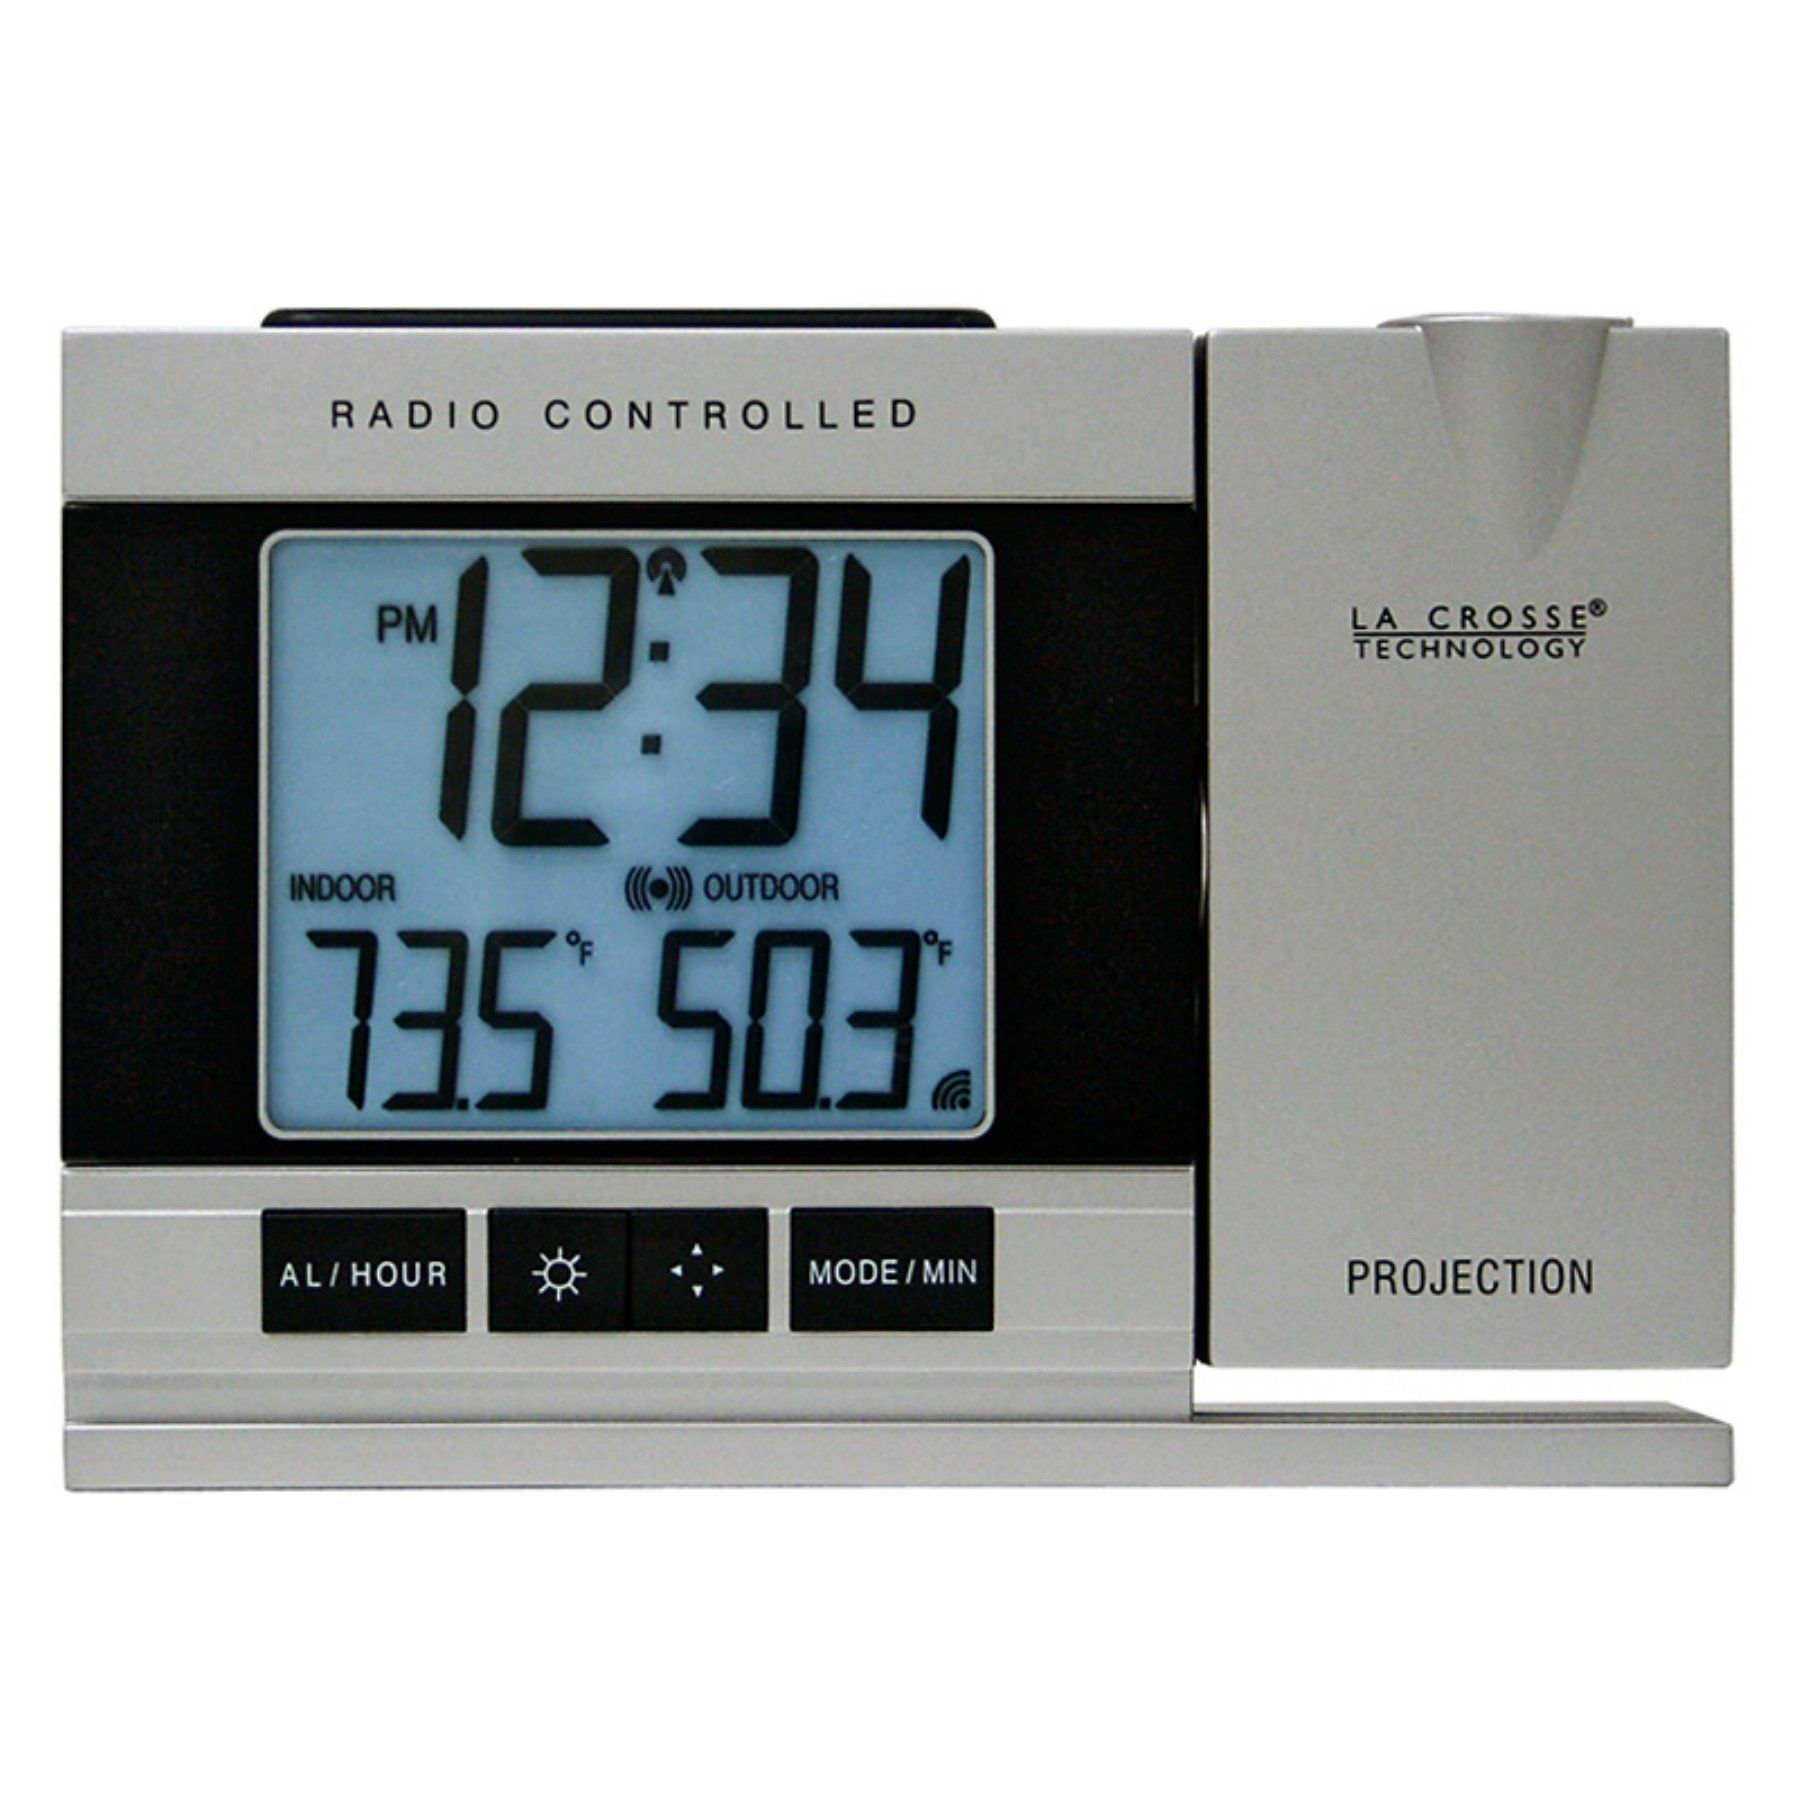 La Crosse Technology Radio Controlled or Manual Projection Alarm Clock with  Temperature - WT-5220U-IT